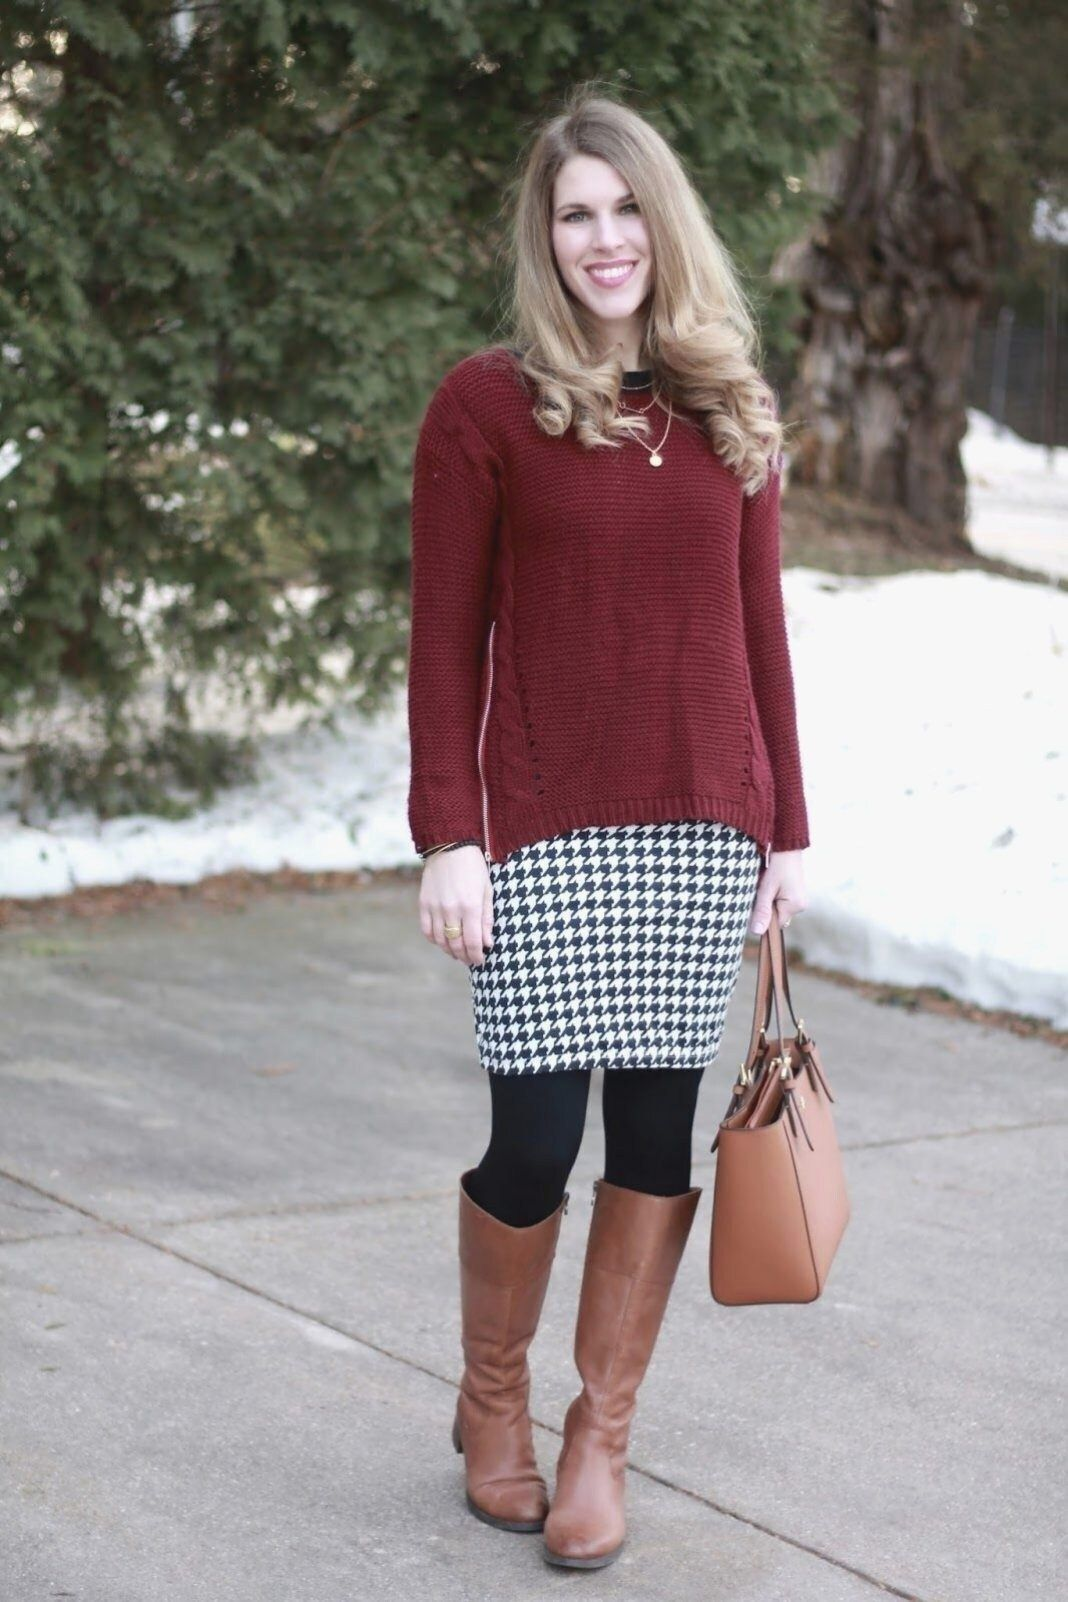 Turning heads #linkup Vintage Boots with Vintage Inspired